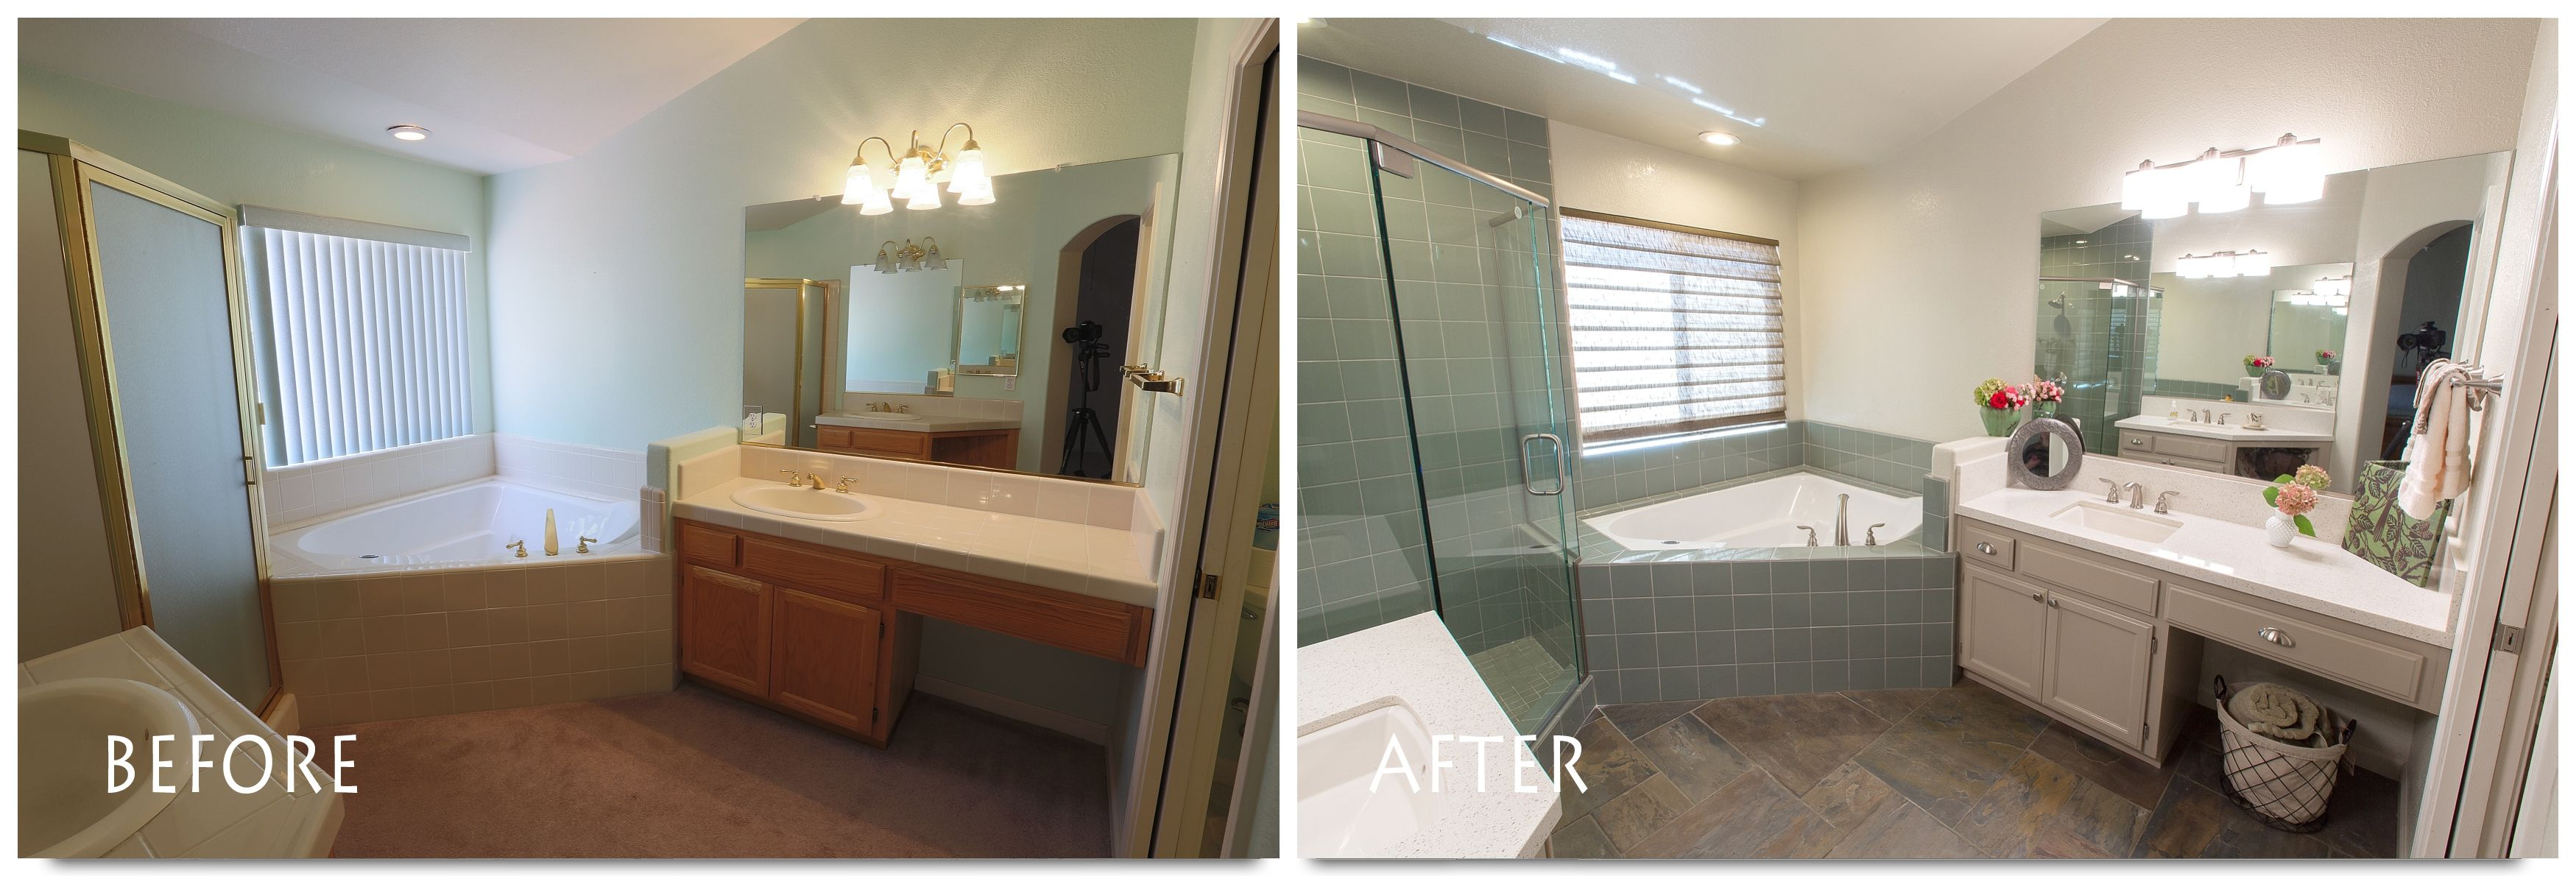 Photo Gallery For Photographers cali bathroom remodels before and after Google Search